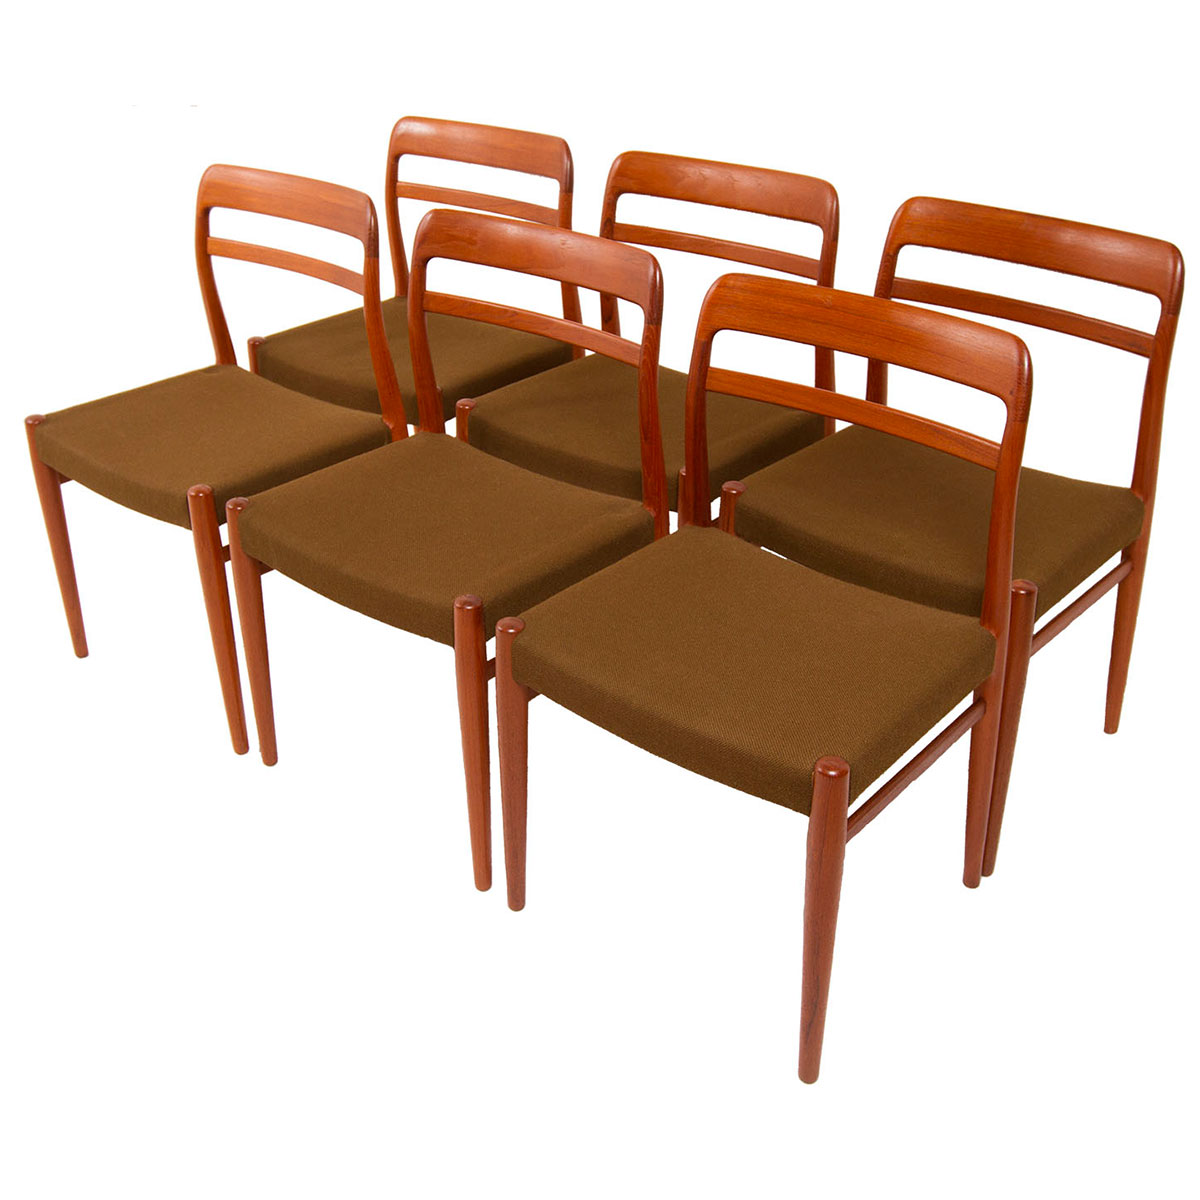 Set of 6 Modern Norwegian Teak Dining Chairs